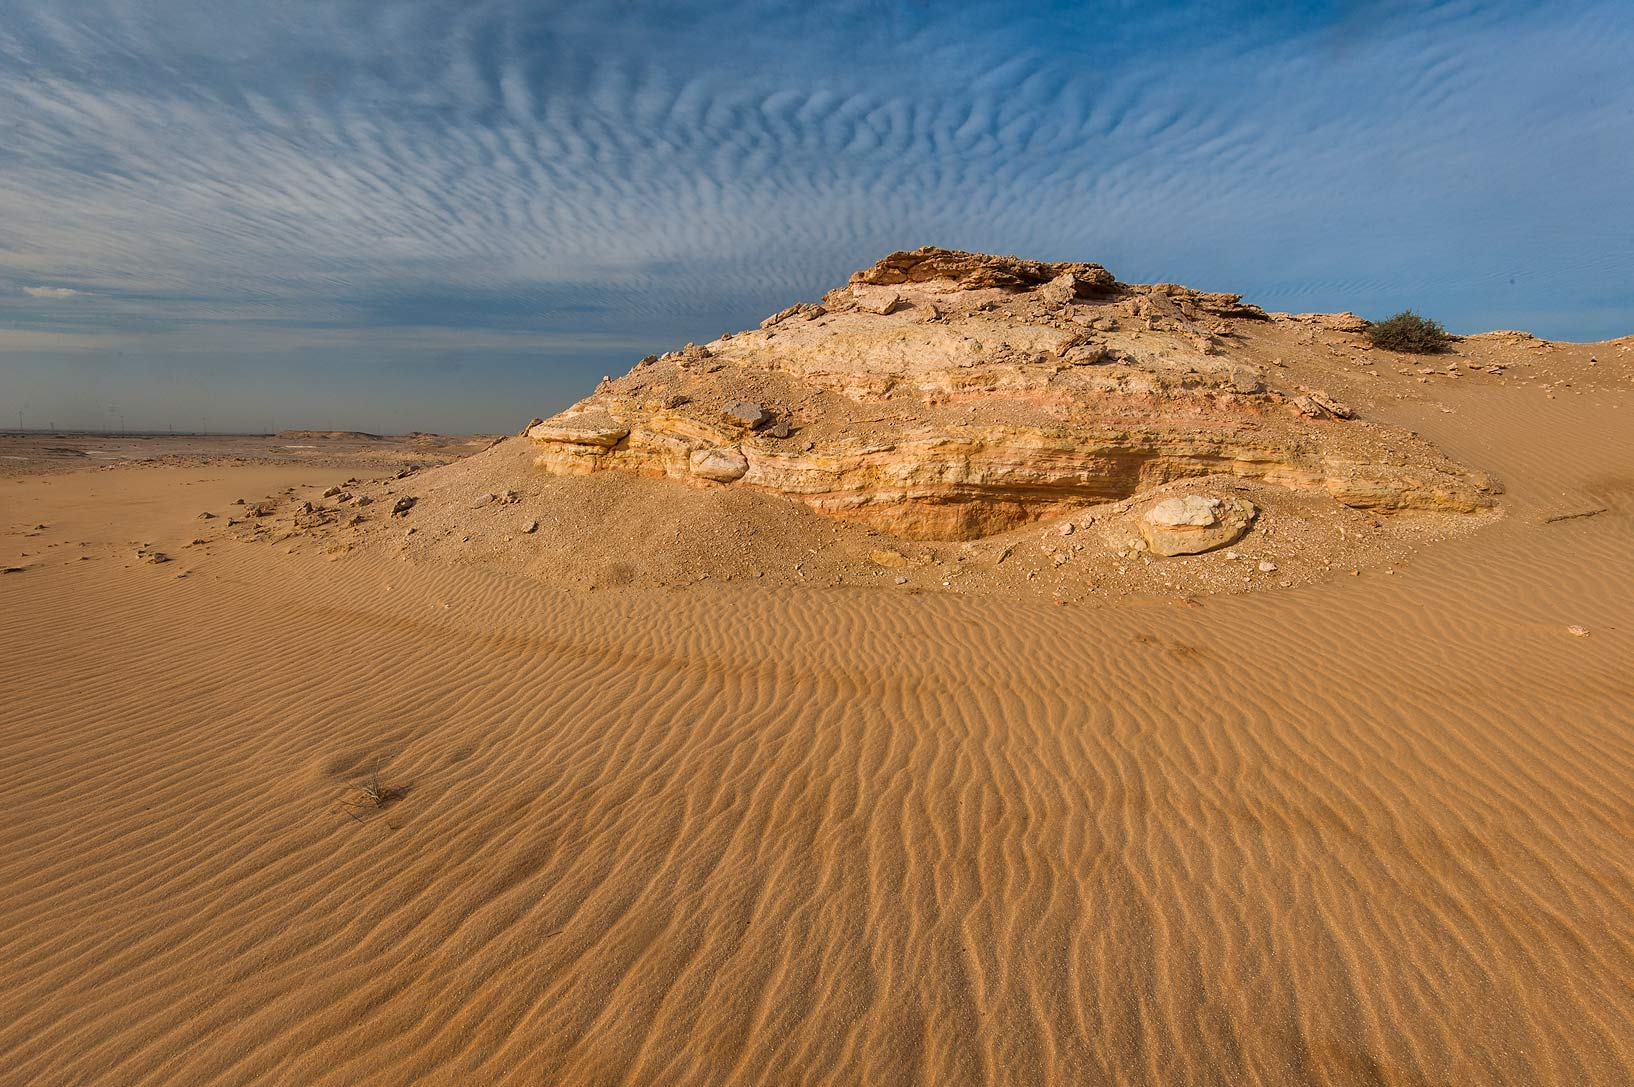 Sand and sky ripples in area of Jebel Al-Nakhsh (Khashm an Nakhsh). South-western Qatar